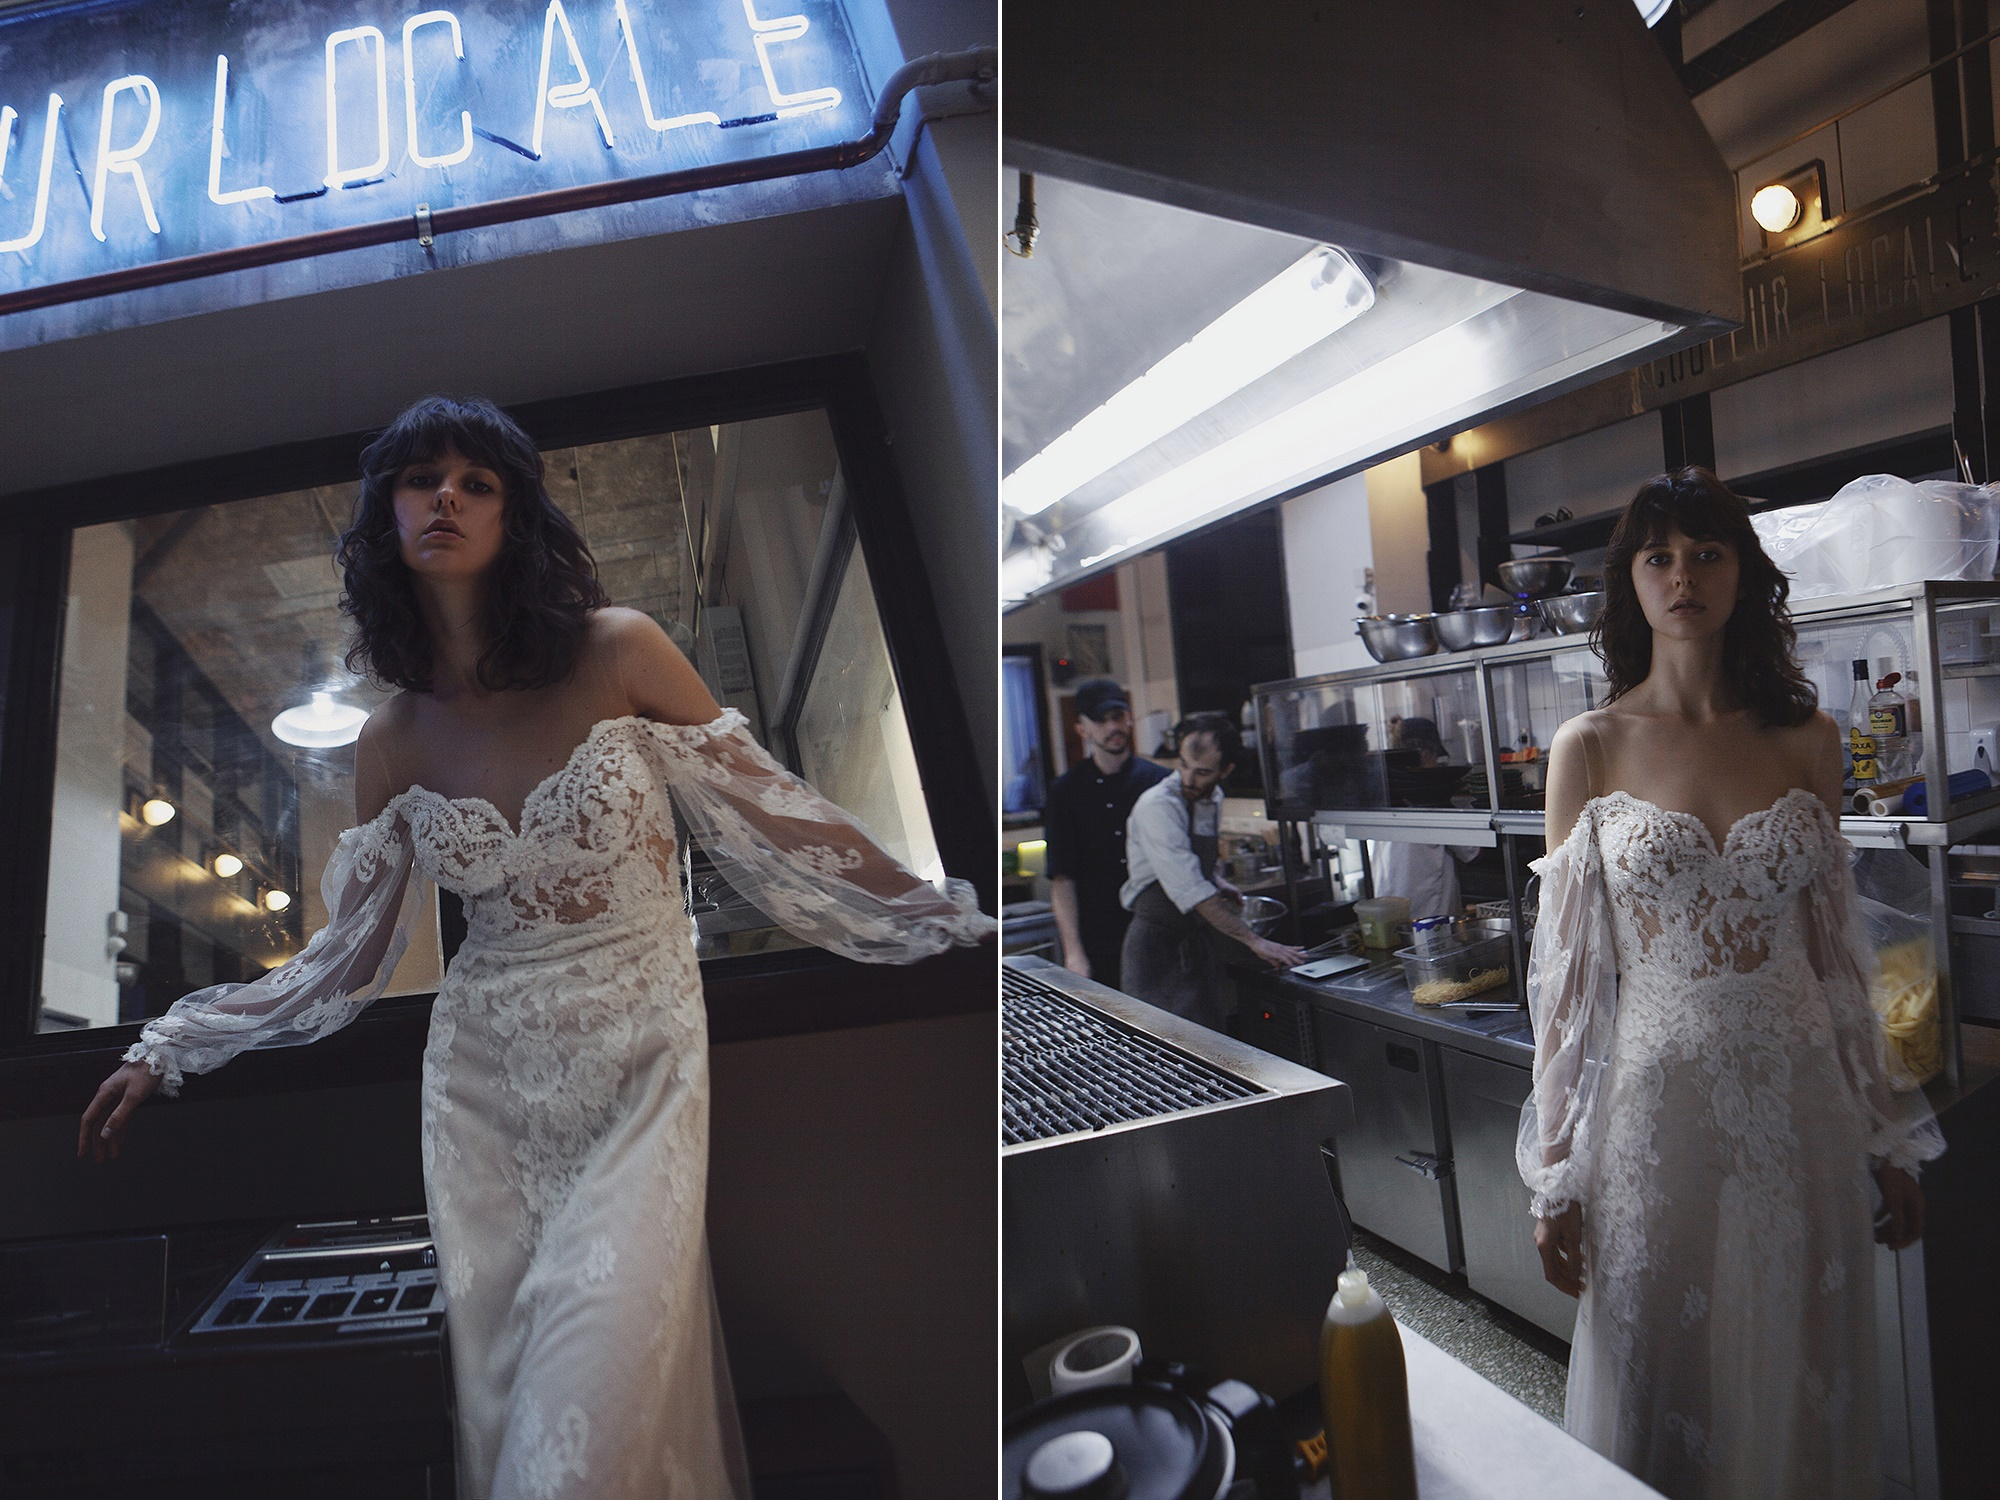 Dreamy wedding dresses by Mairi Mparola